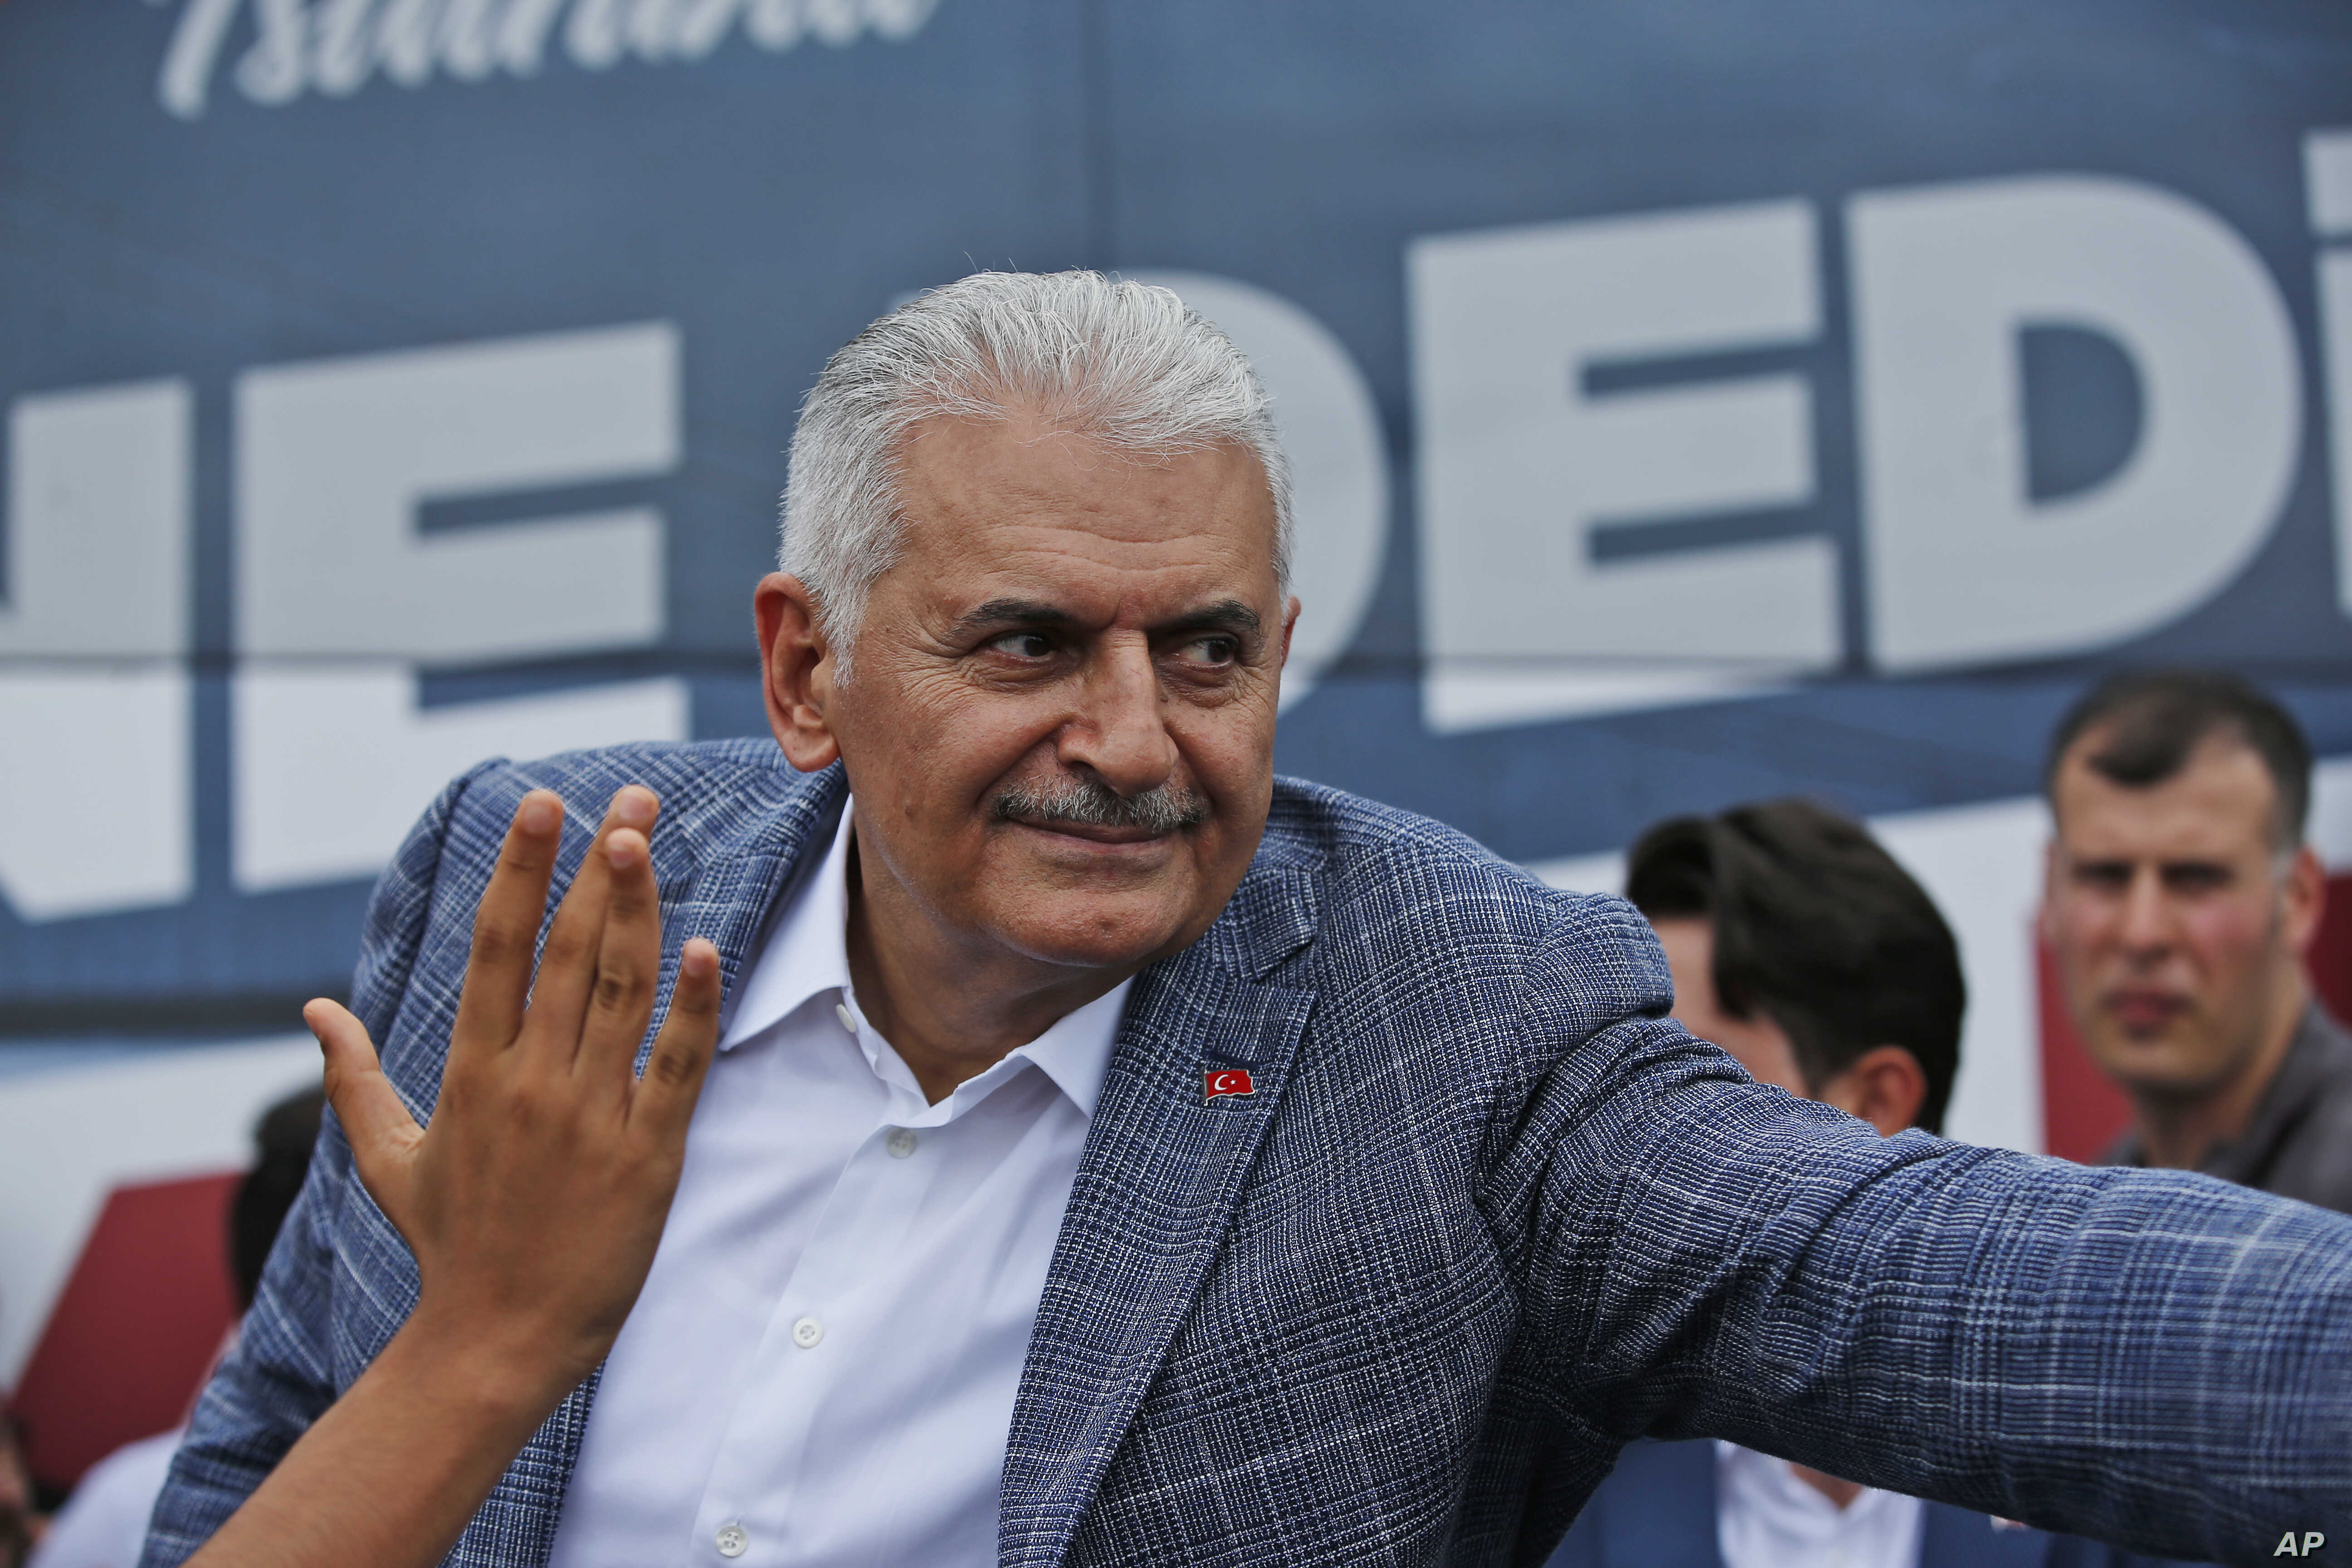 Binali Yildirim, mayoral candidate for Istanbul from Turkey's ruling Justice and Development Party, AKP, salutes supporters following a rally in Istanbul, Friday, June 21, 2019, ahead of June 23 re-run of mayoral elections. (AP Photo/Lefteris…